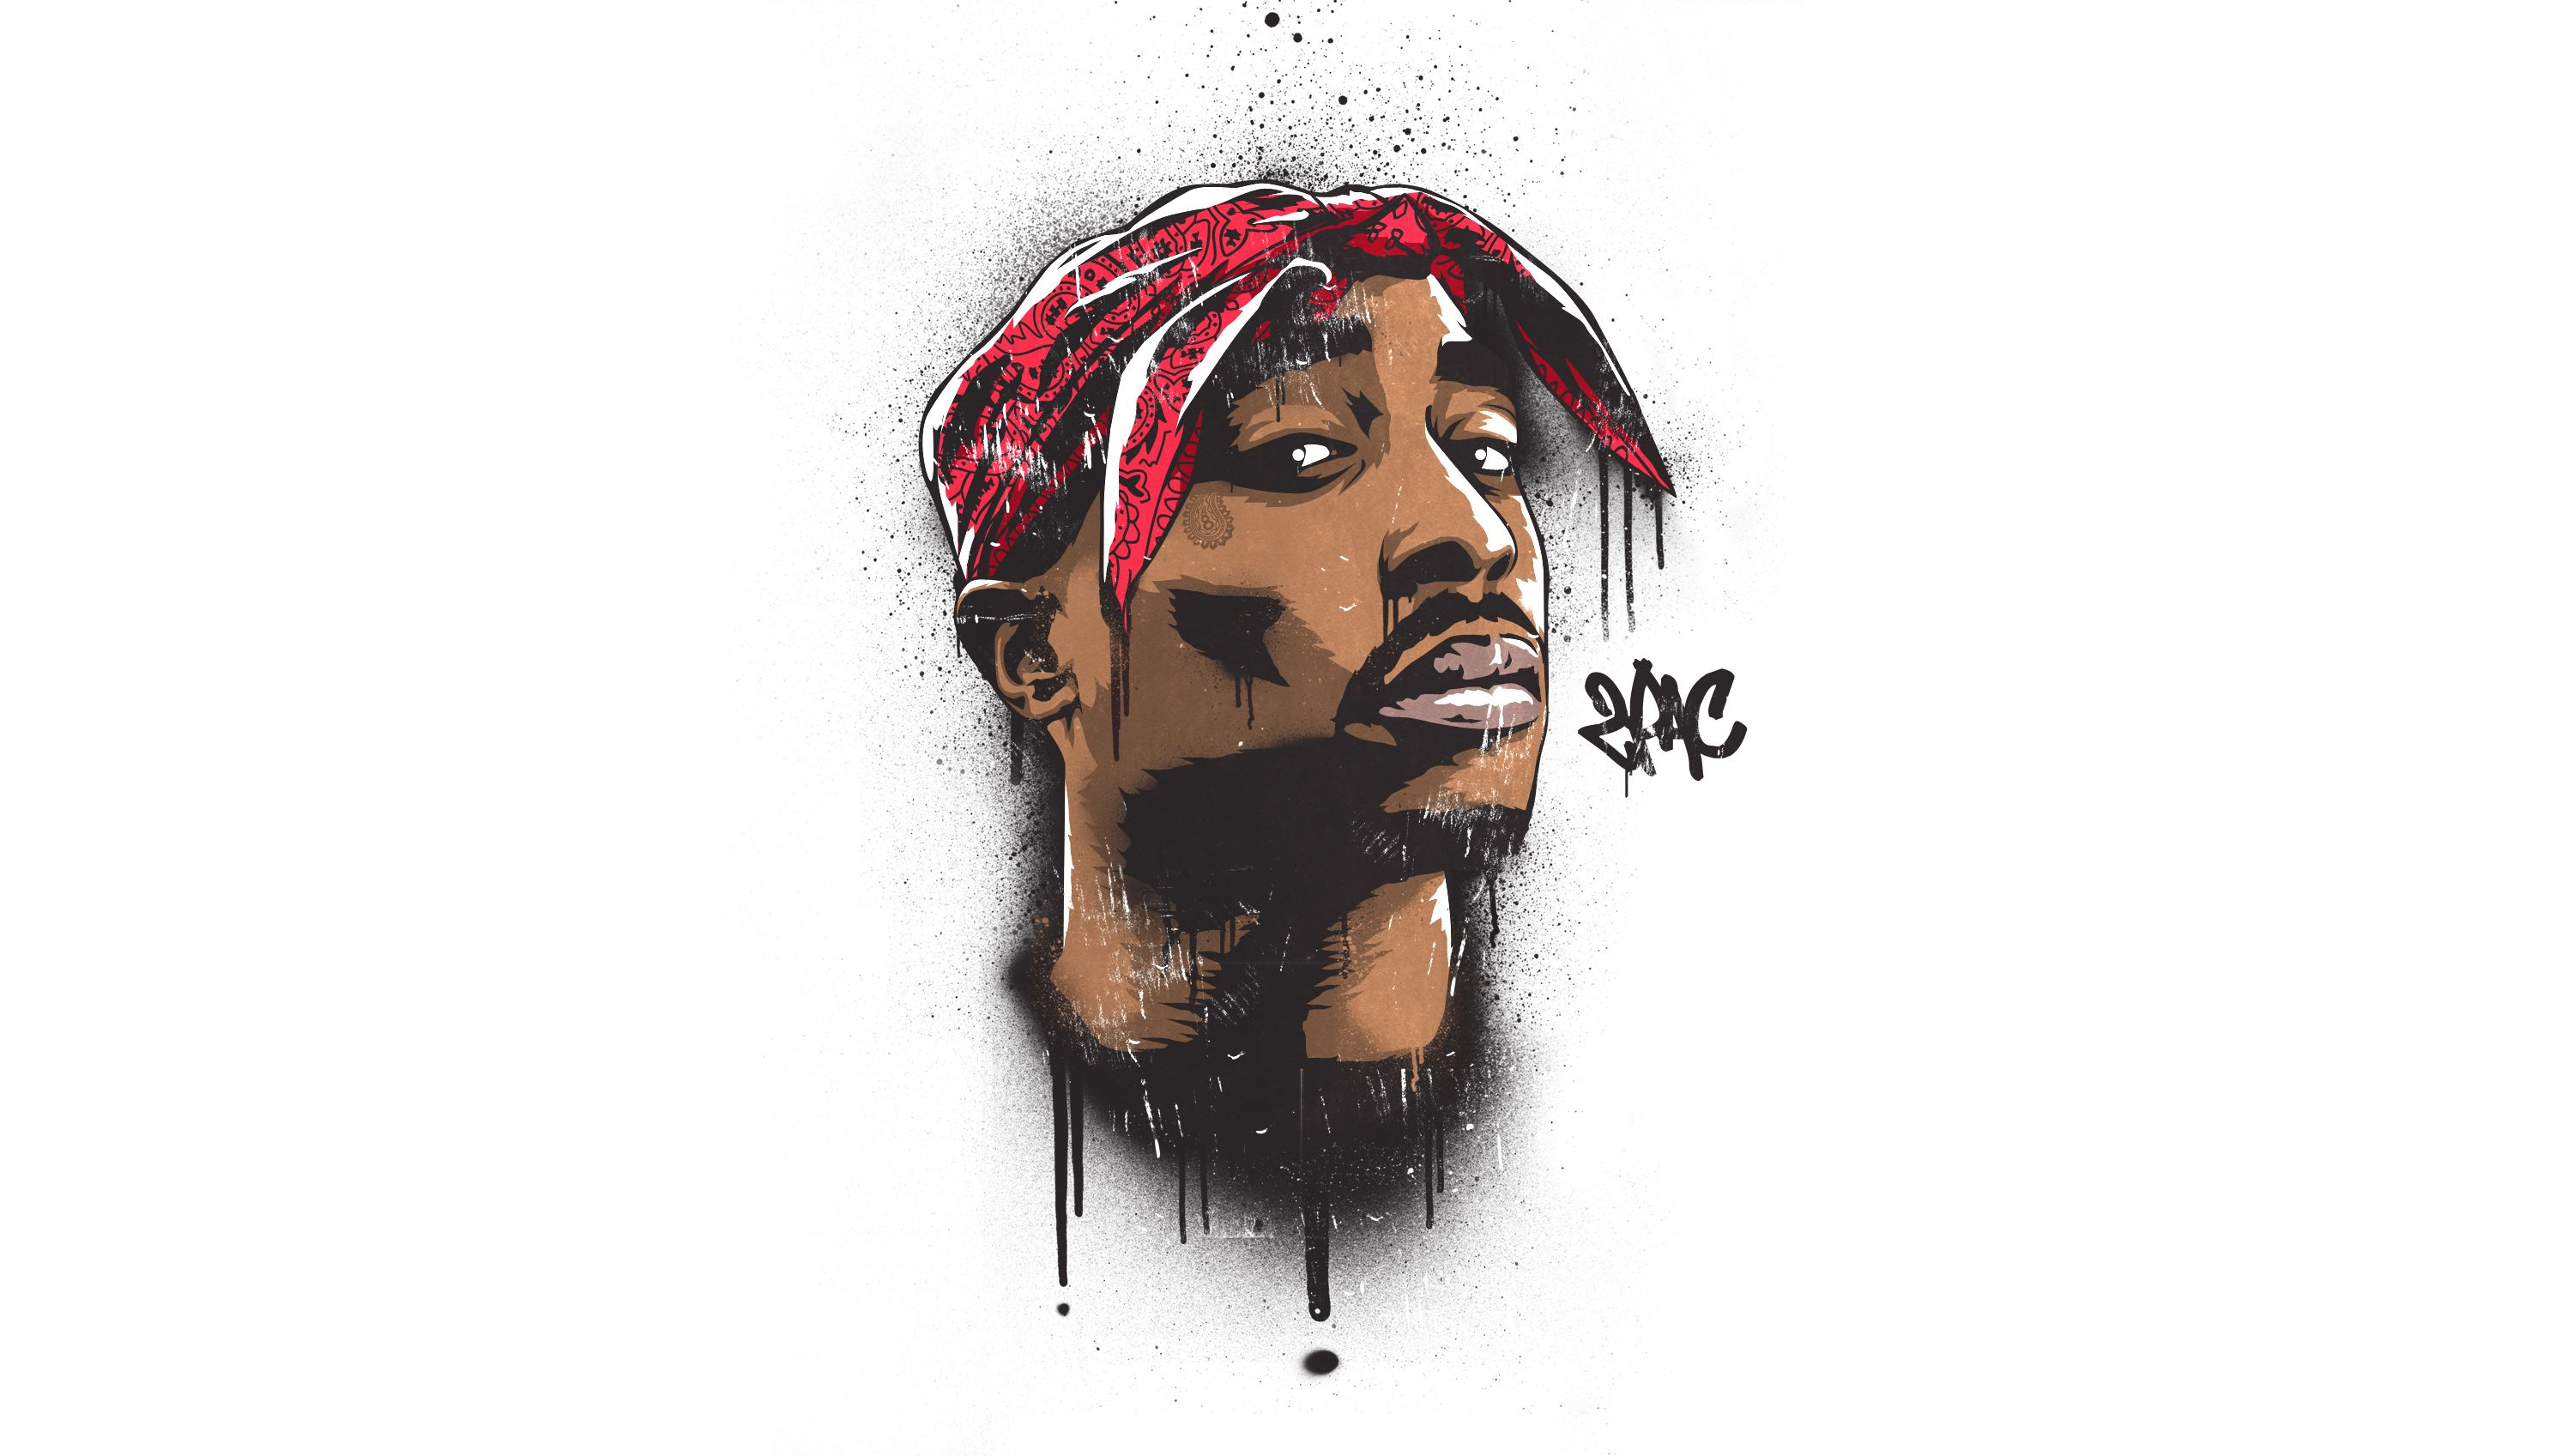 Tupac Wallpaper 2pac wallpaper, Portrait painting, 2pac